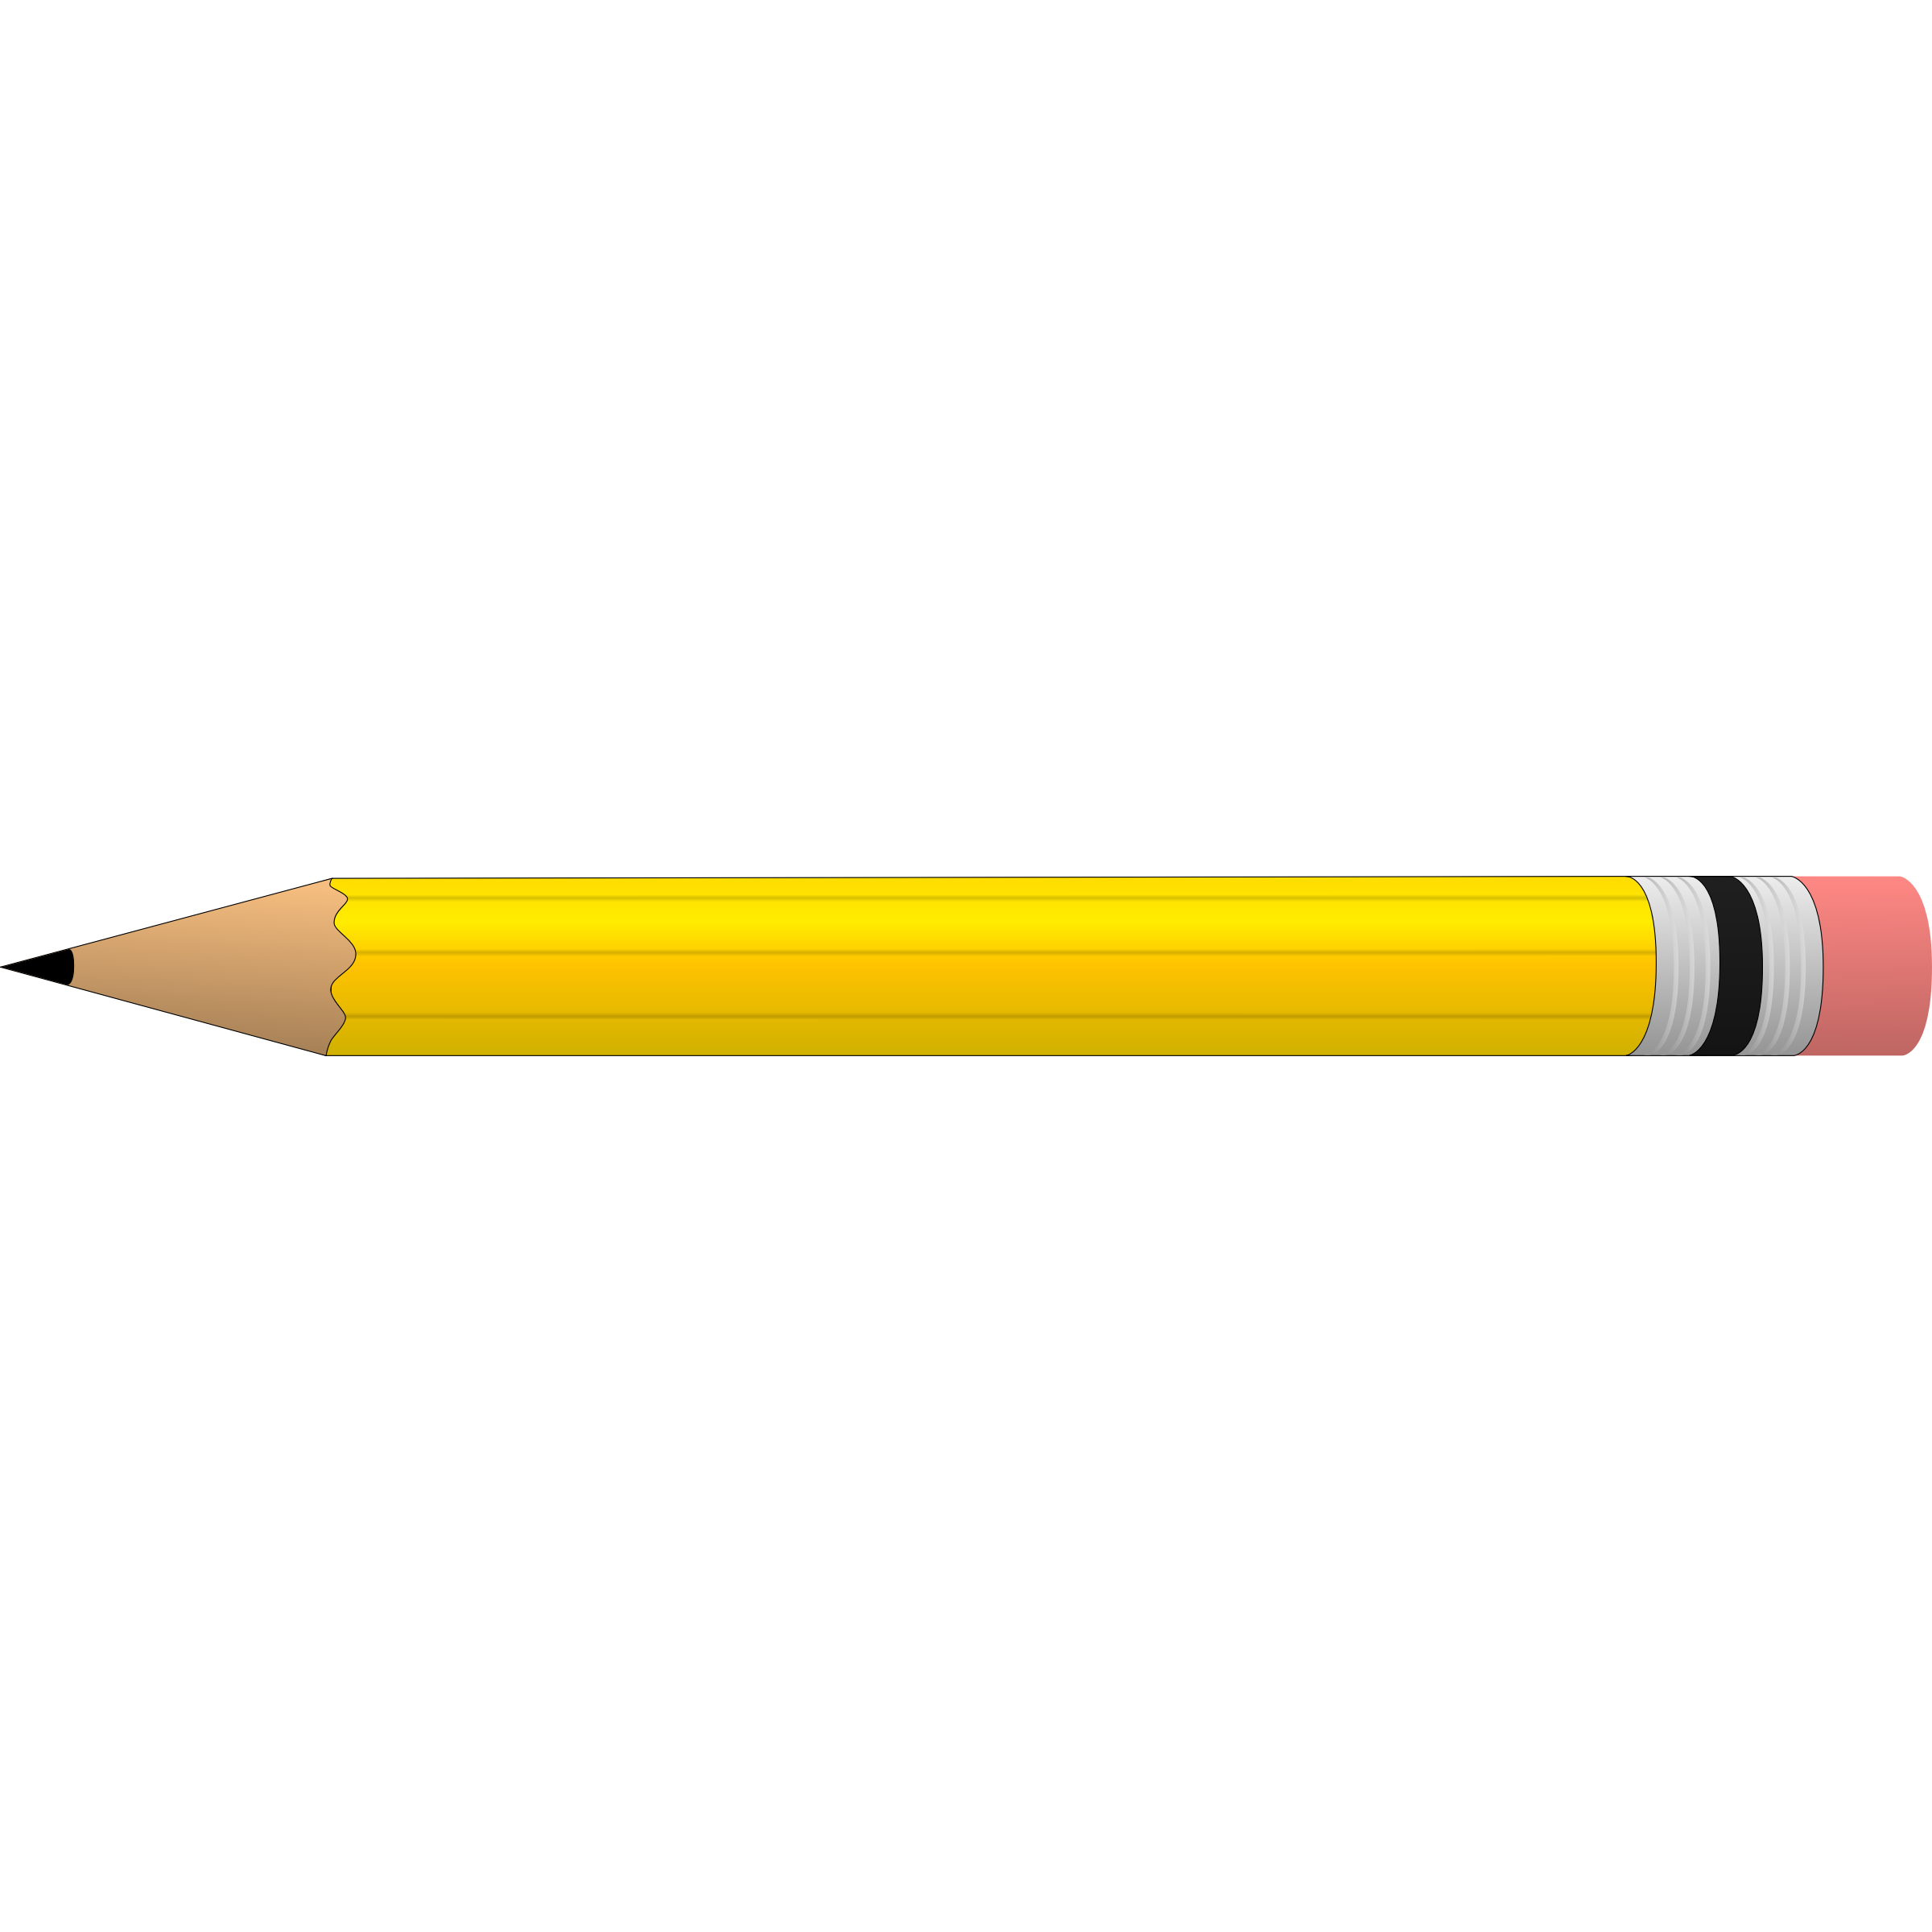 Pencils clipart clip art library library Free Images Pencils, Download Free Clip Art, Free Clip Art ... clip art library library